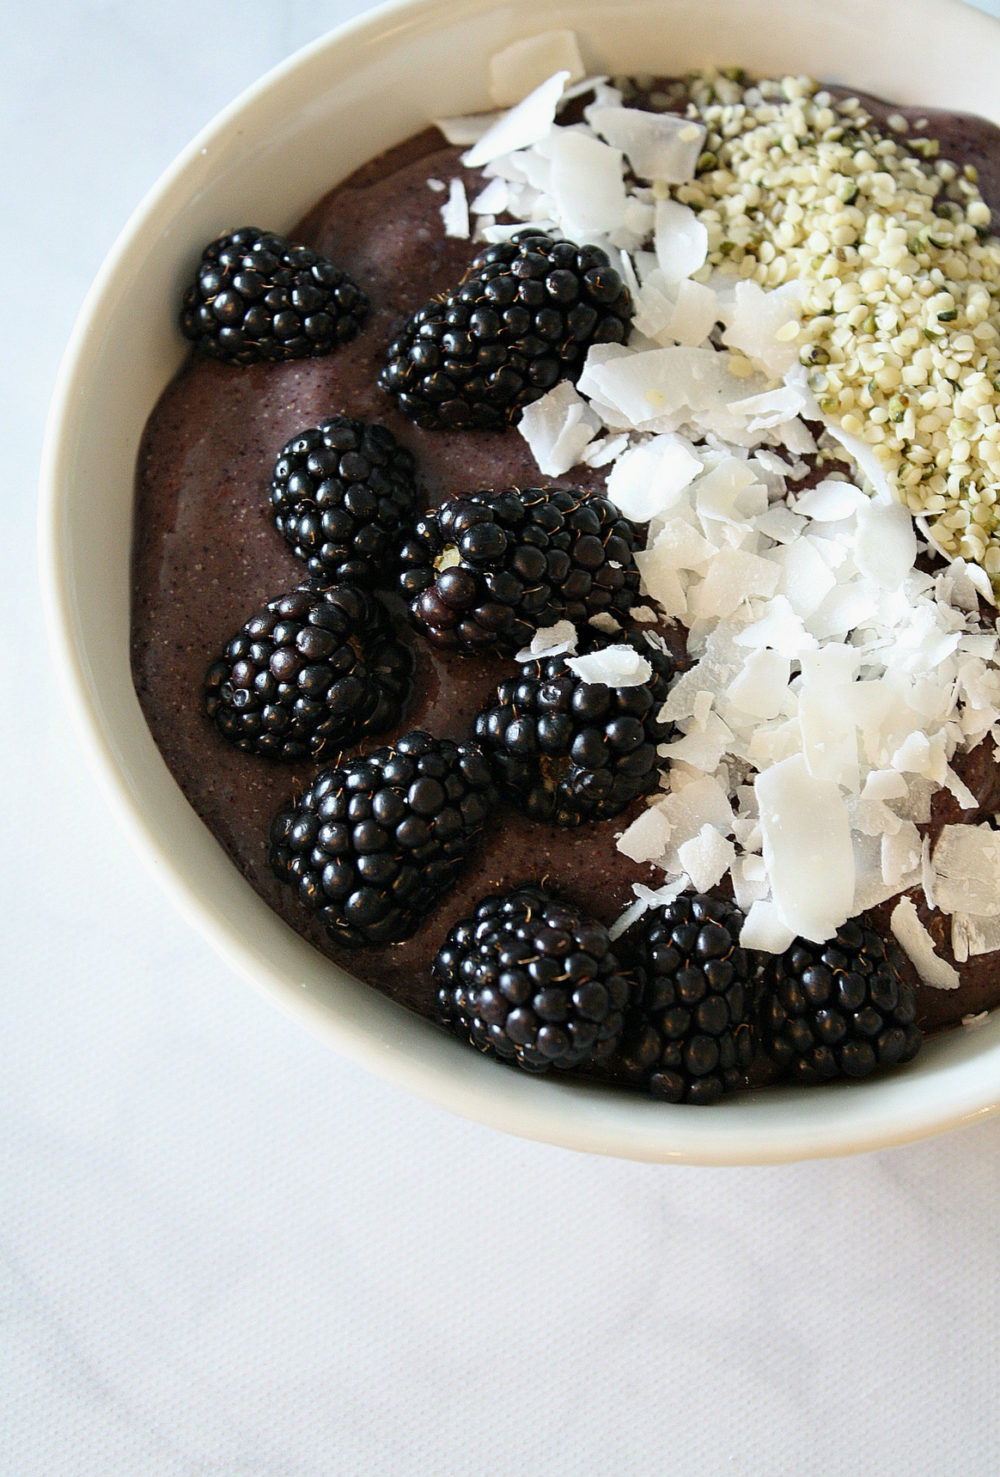 White bowl filled with Blueberry Superfood Smoothie Bowl topped with blackberries, coconut chips, and hemp hearts